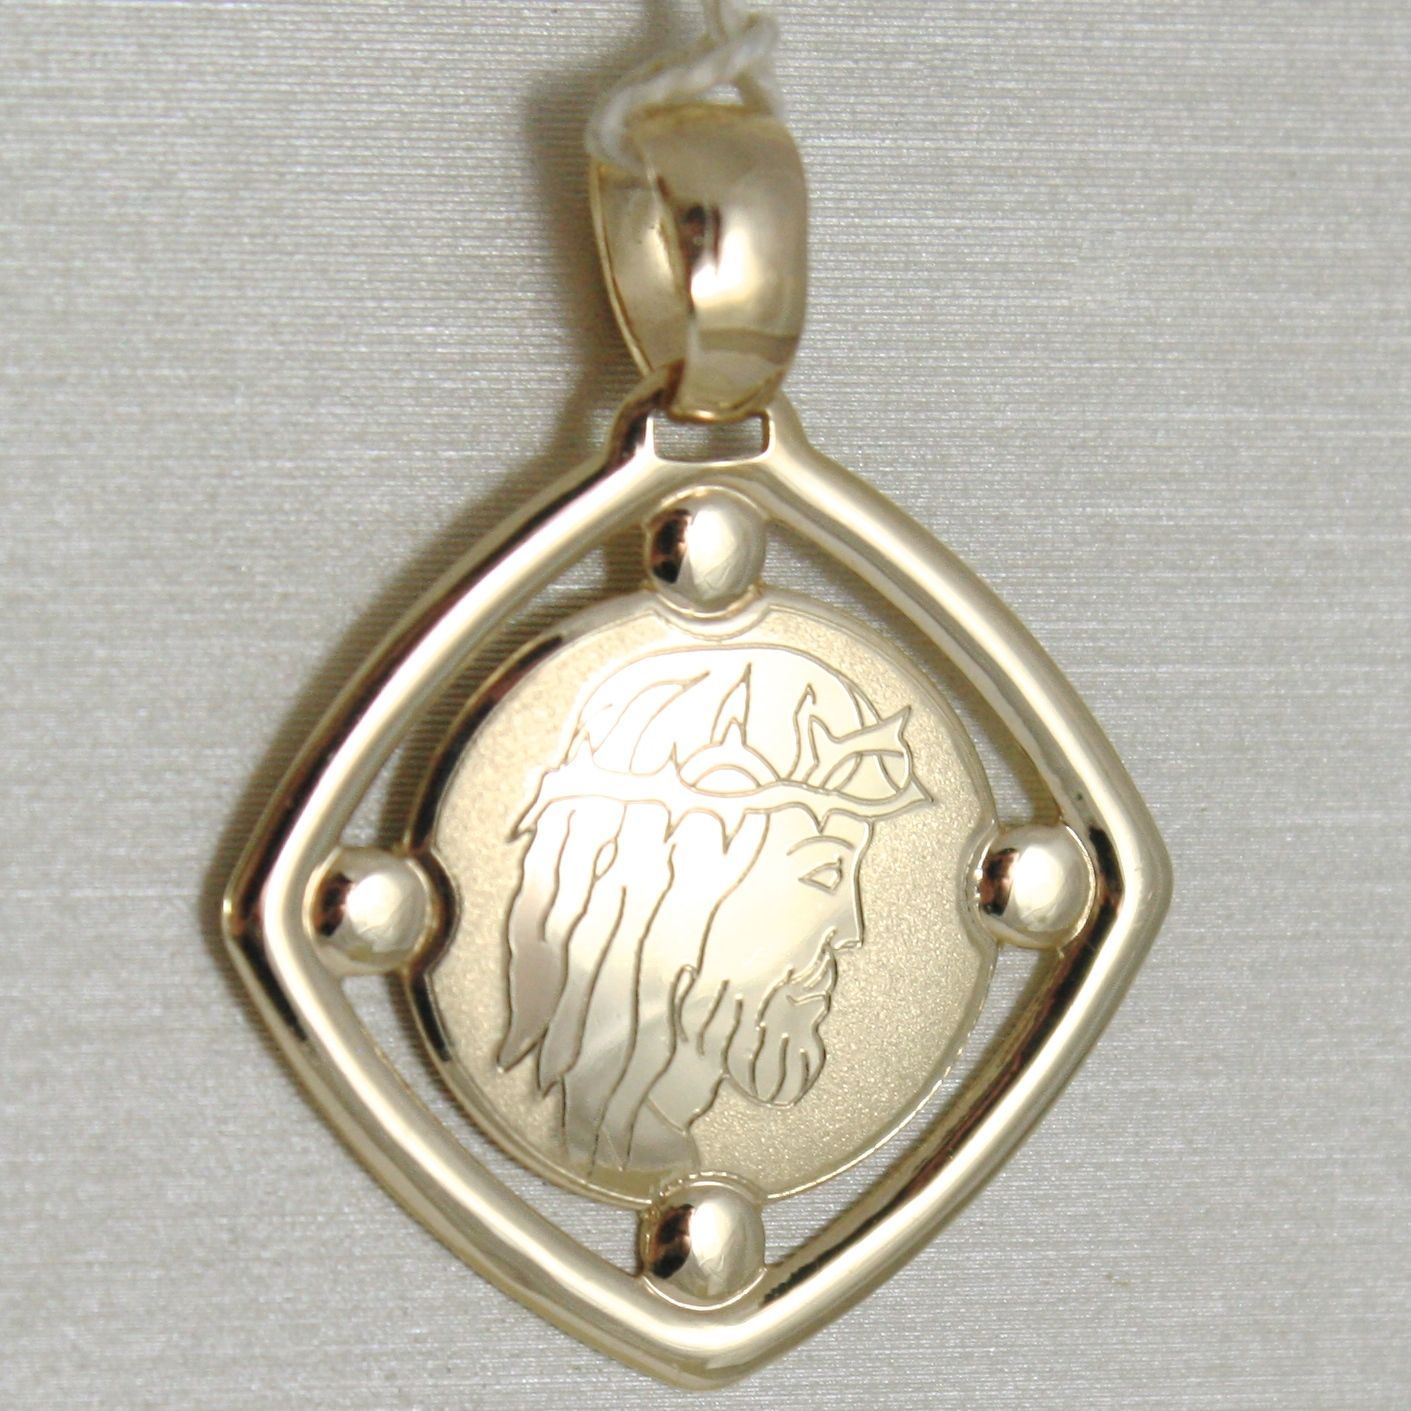 PENDANT MEDAL YELLOW GOLD 375 9K, VOLTO CHRIST, RHOMBUS, SATIN, MADE IN ITALY